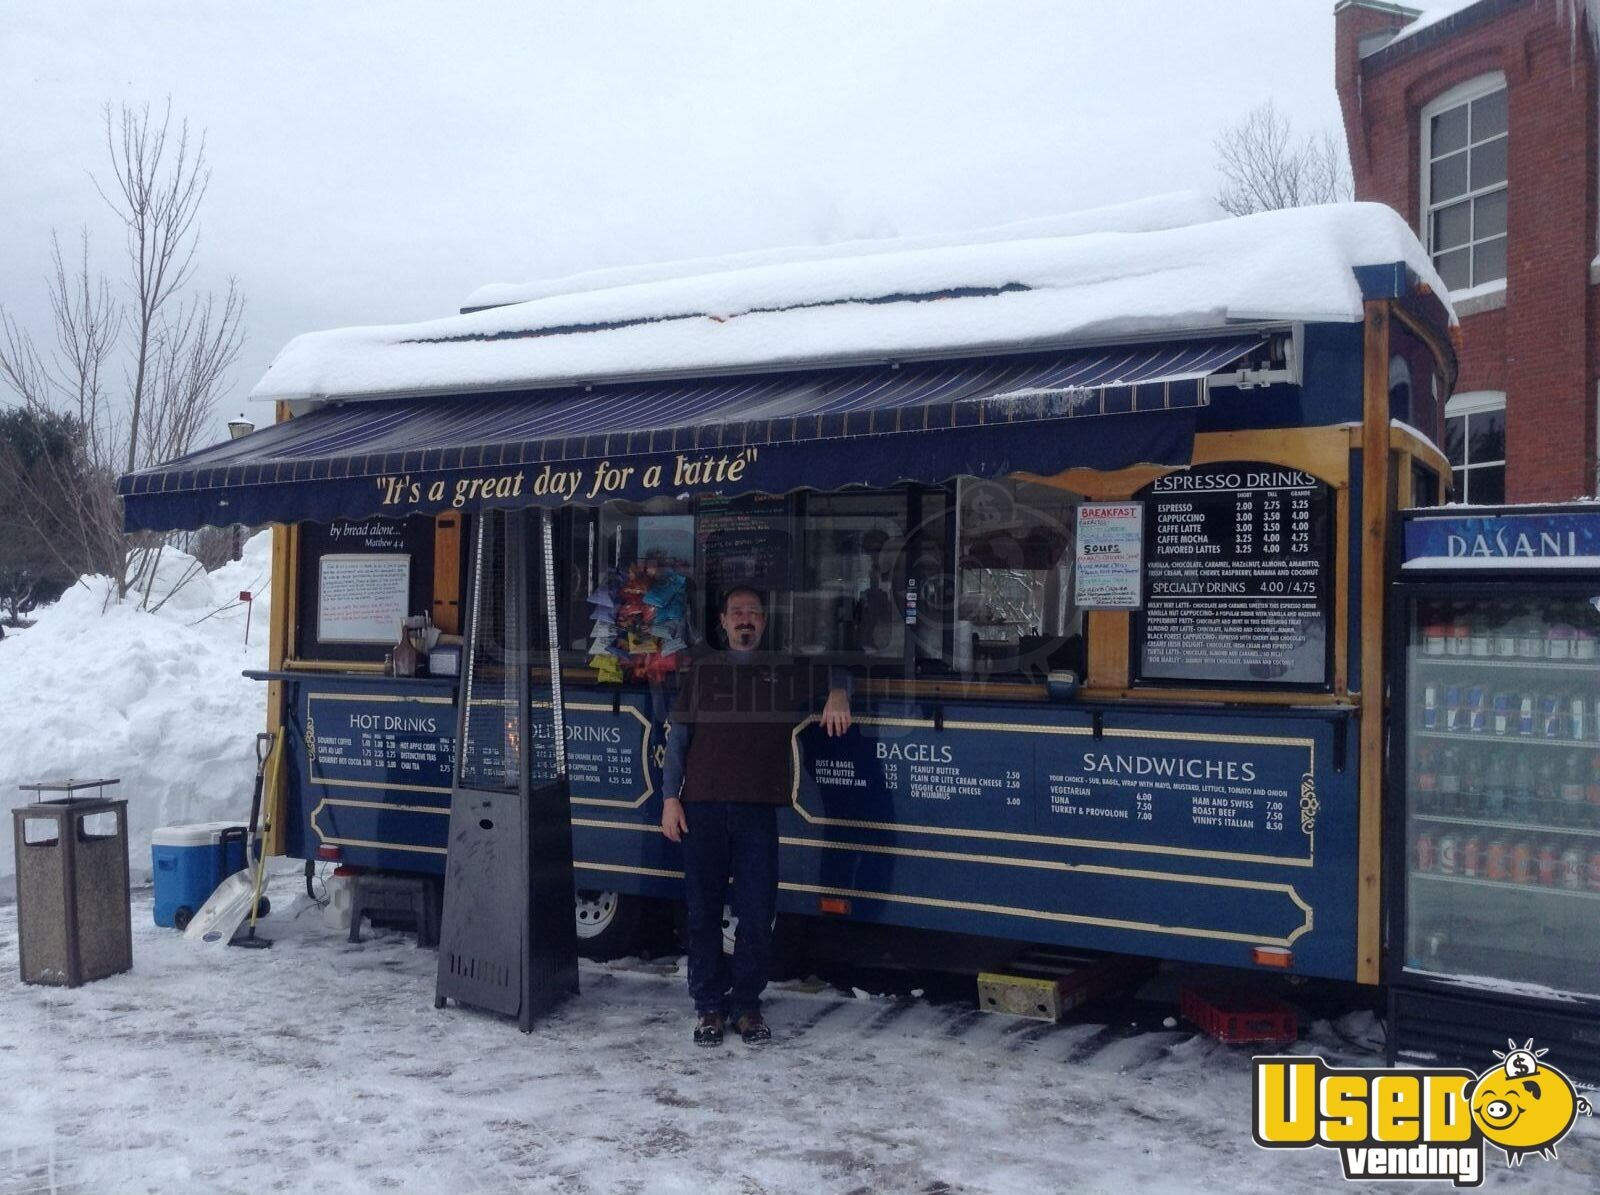 2004 Classic Trolley, Medford, Or Coffee Trailer Air Conditioning New Hampshire for Sale - 2